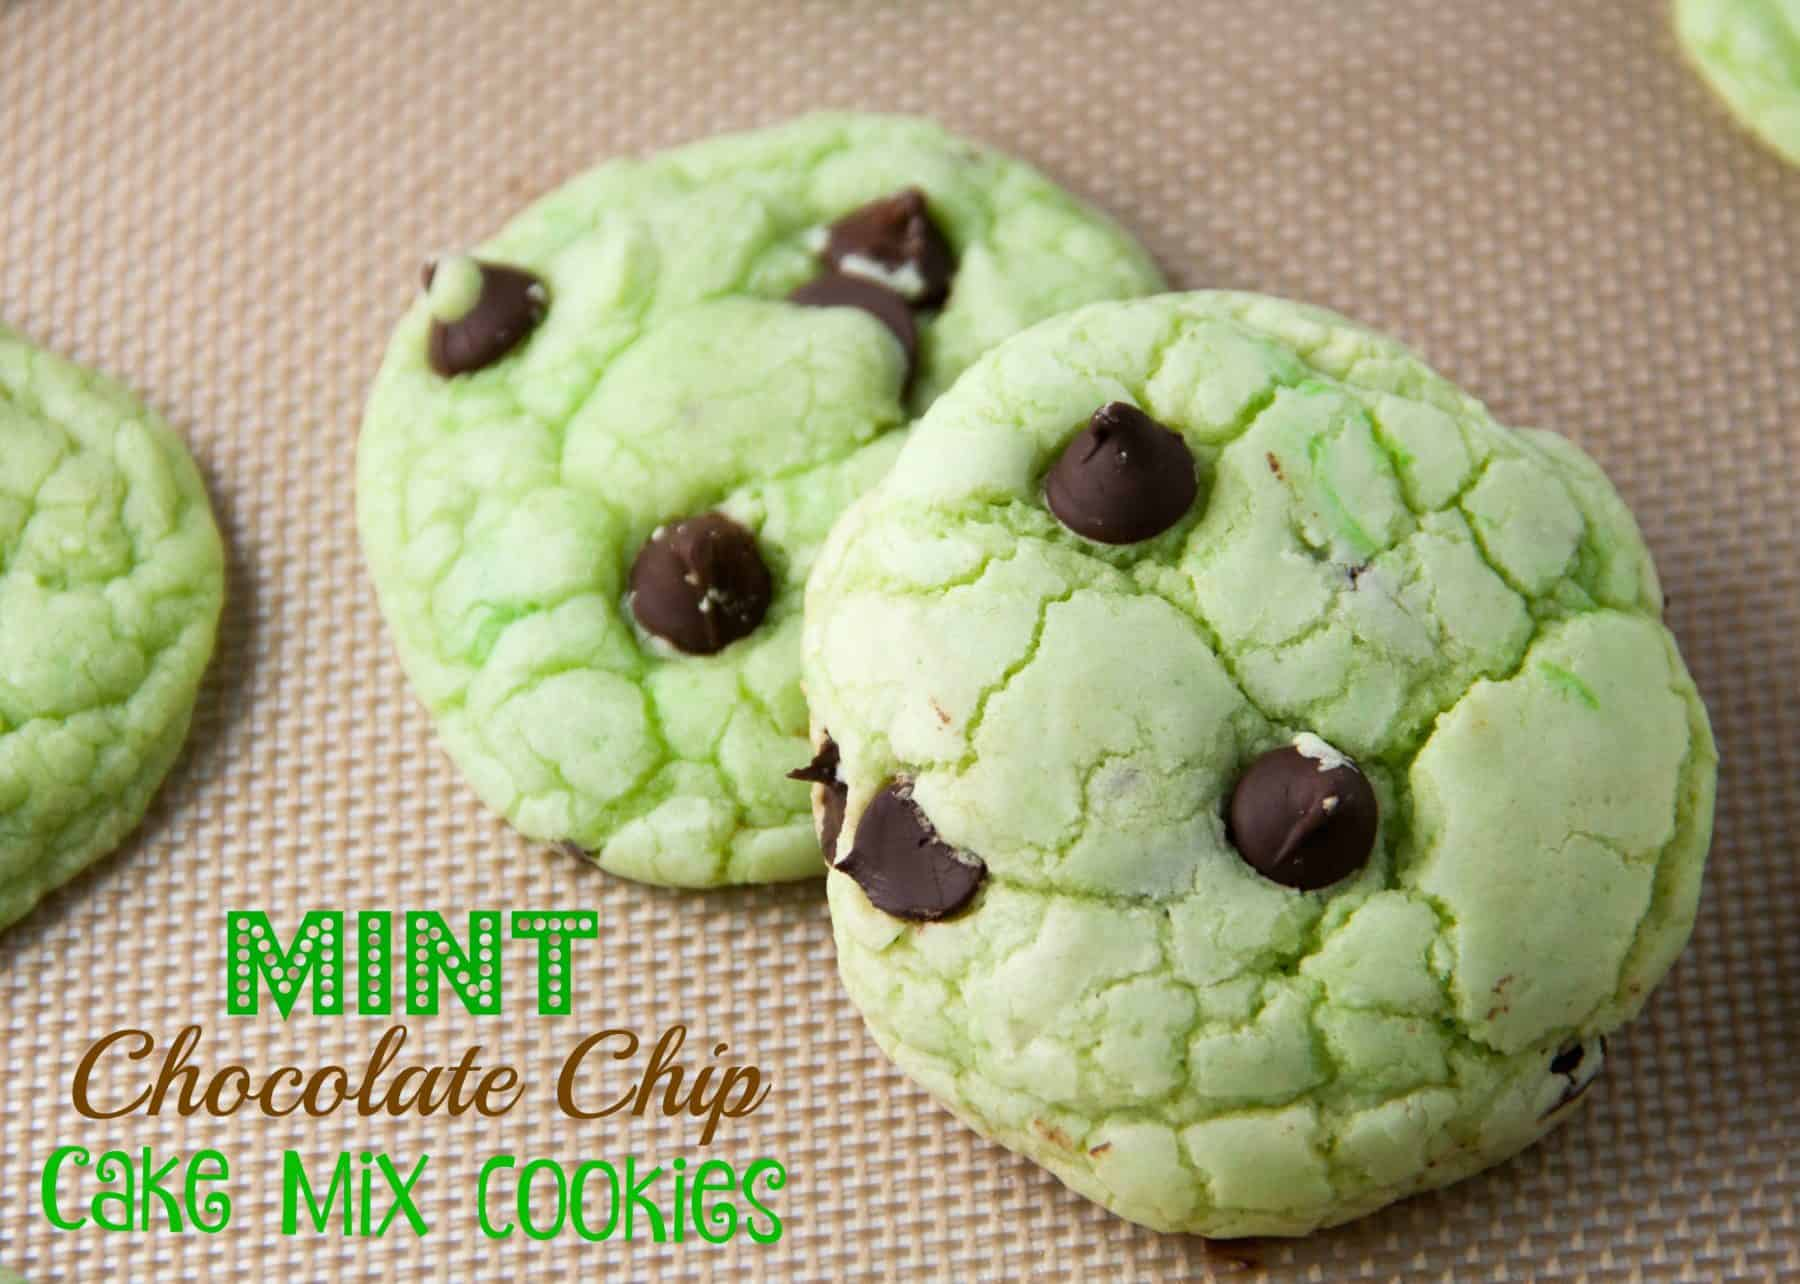 mint and chocolate chip cookie whipped up using a cake mix! So easy ...